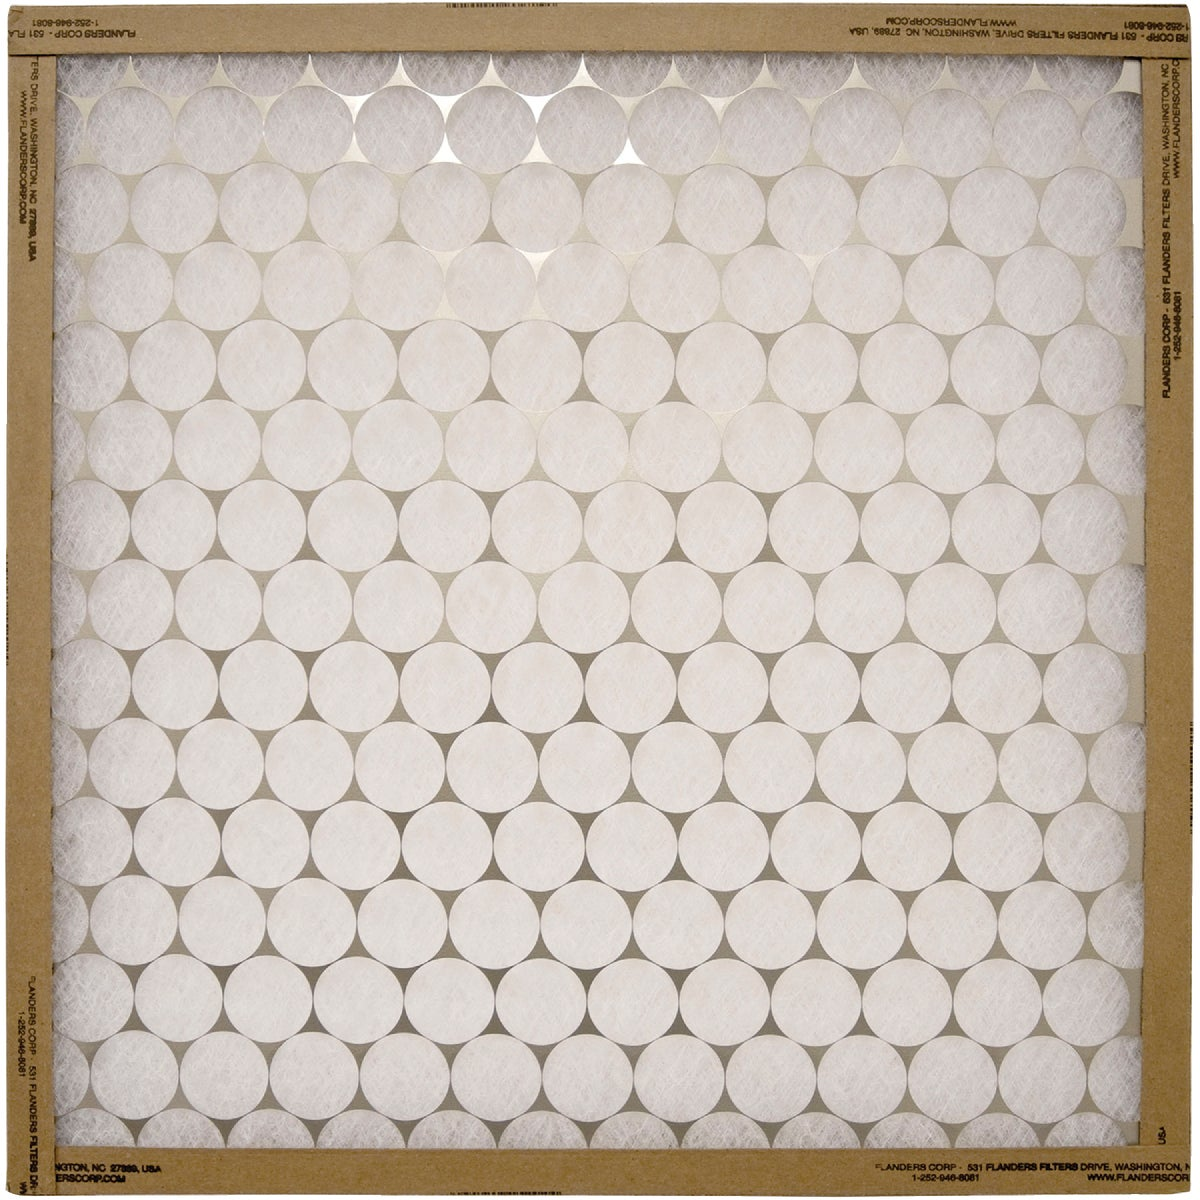 18X20X1 FURNACE FILTER - 10255.011820 by Flanders Corp